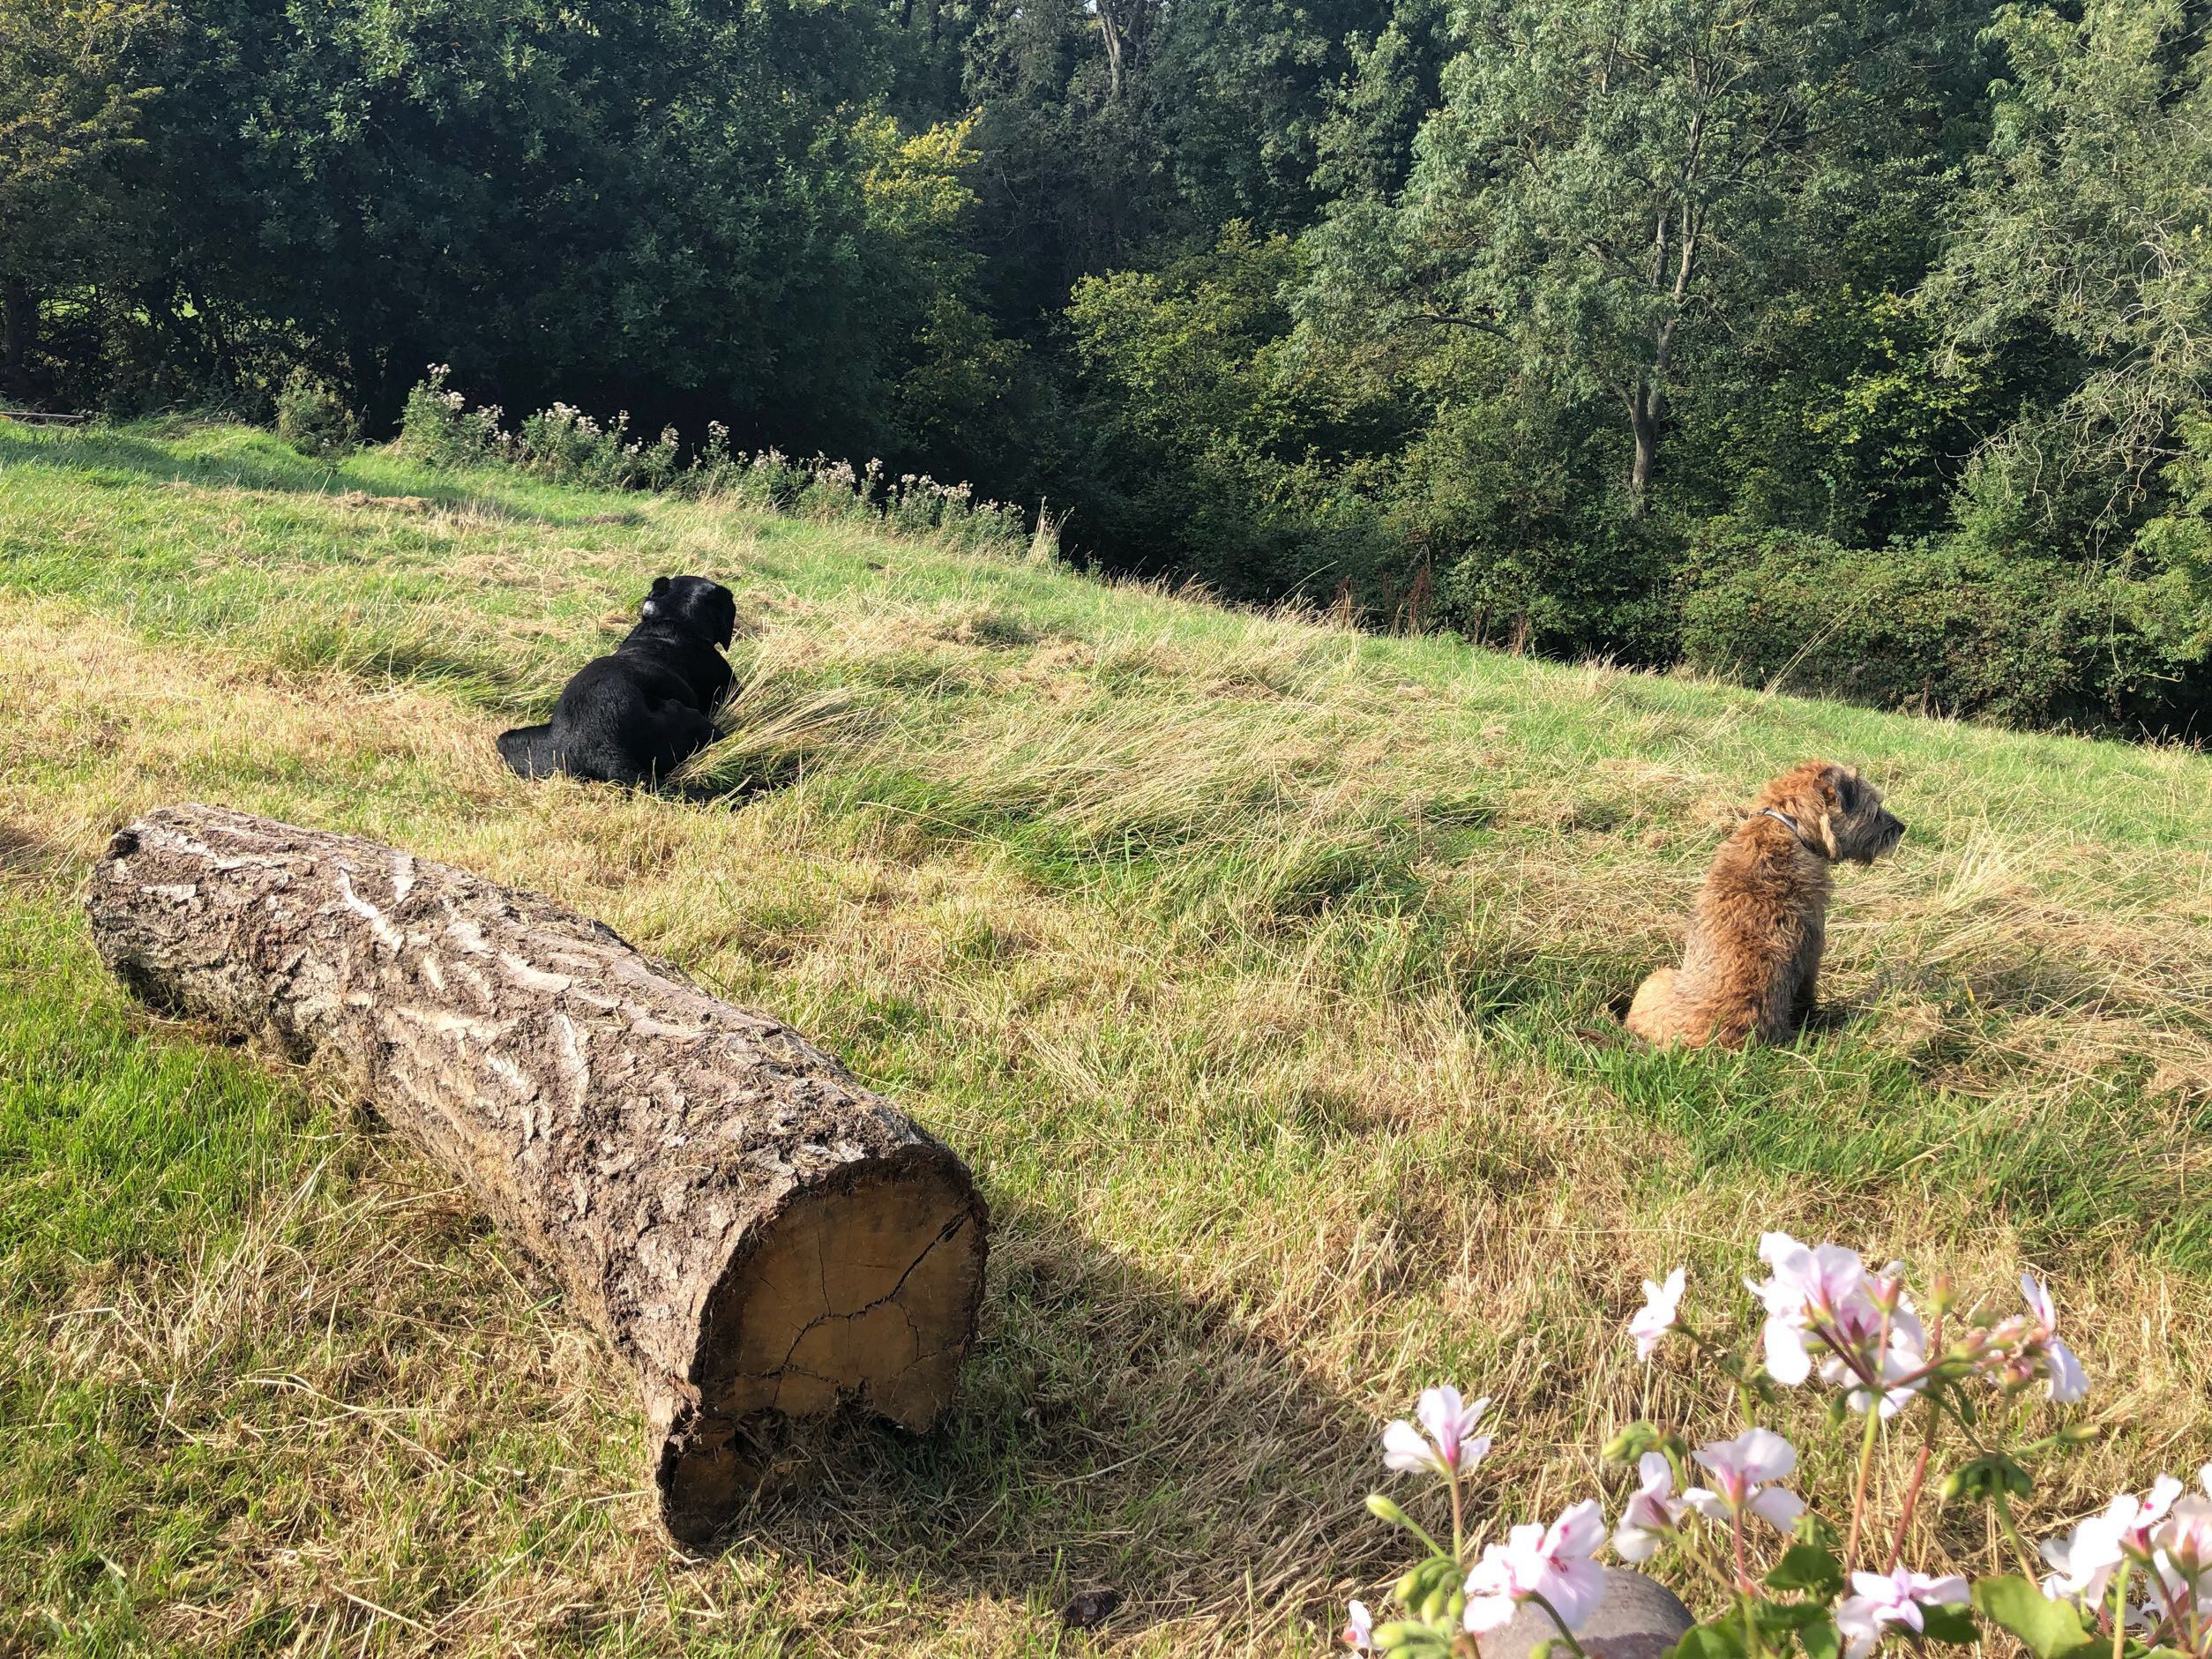 Dogs keeping watch on the campsite